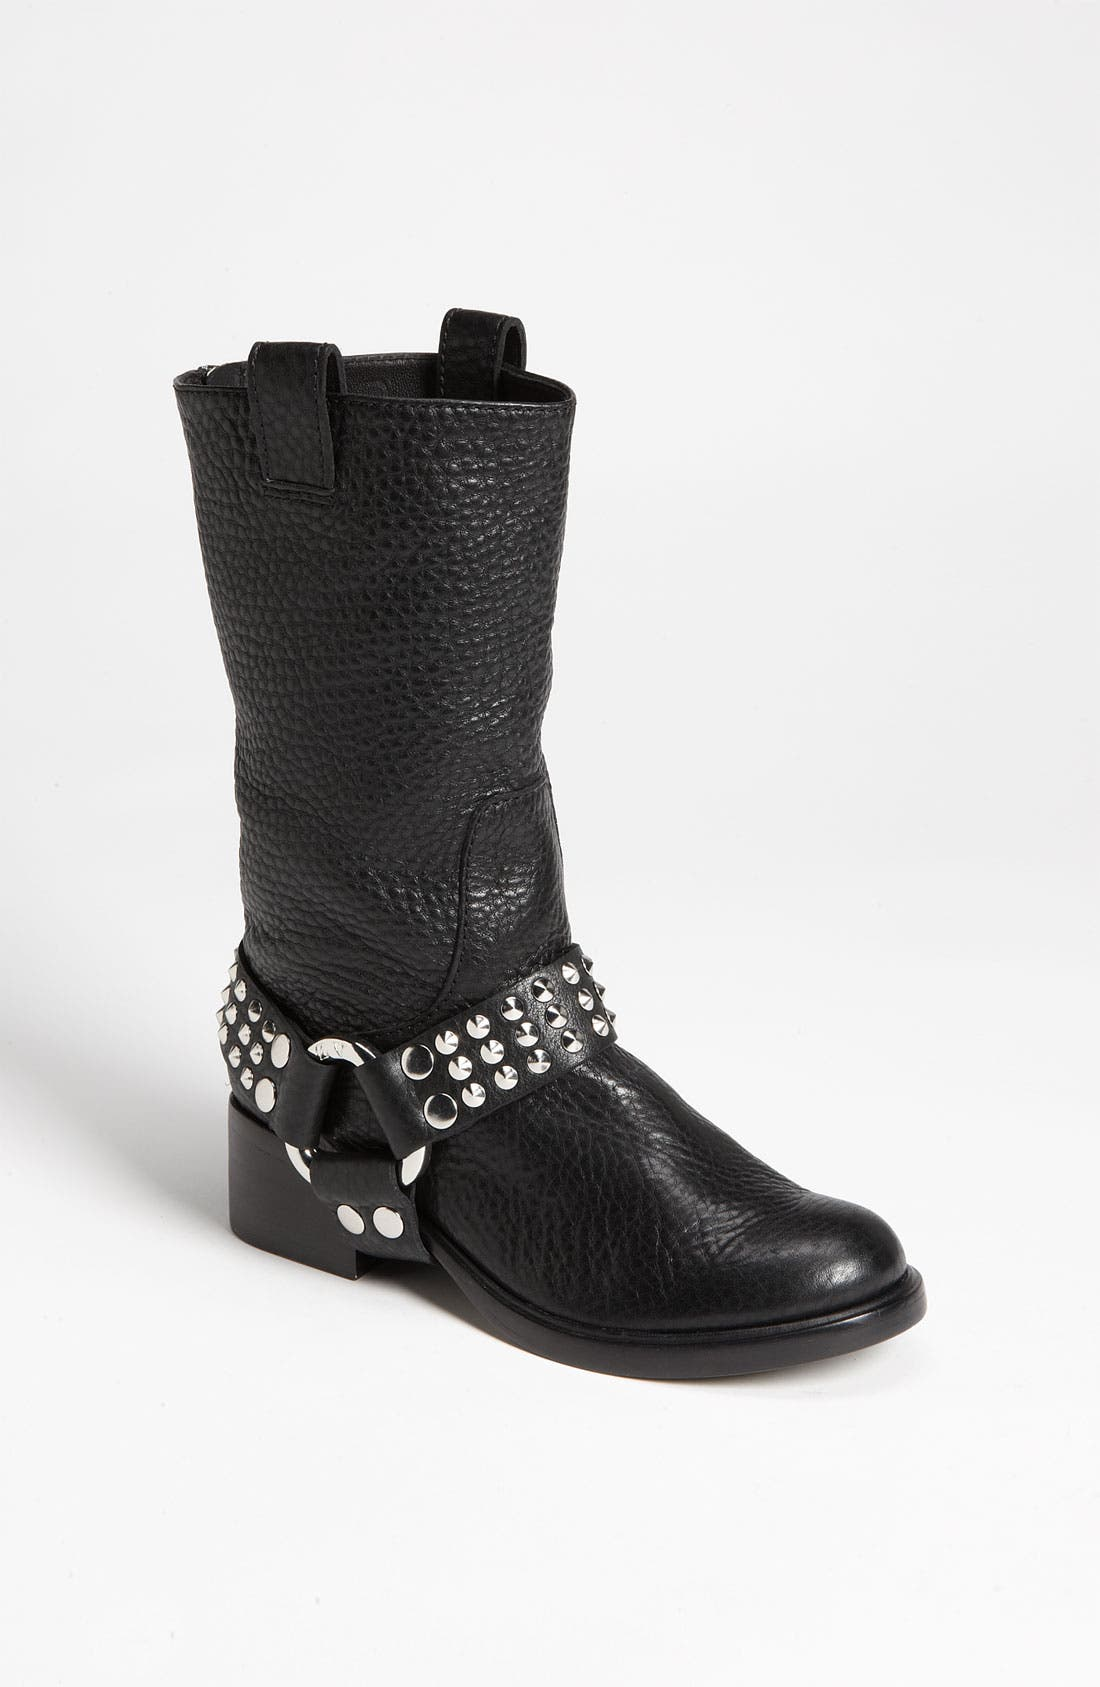 Alternate Image 1 Selected - Zadig & Voltaire 'Roady' Boot